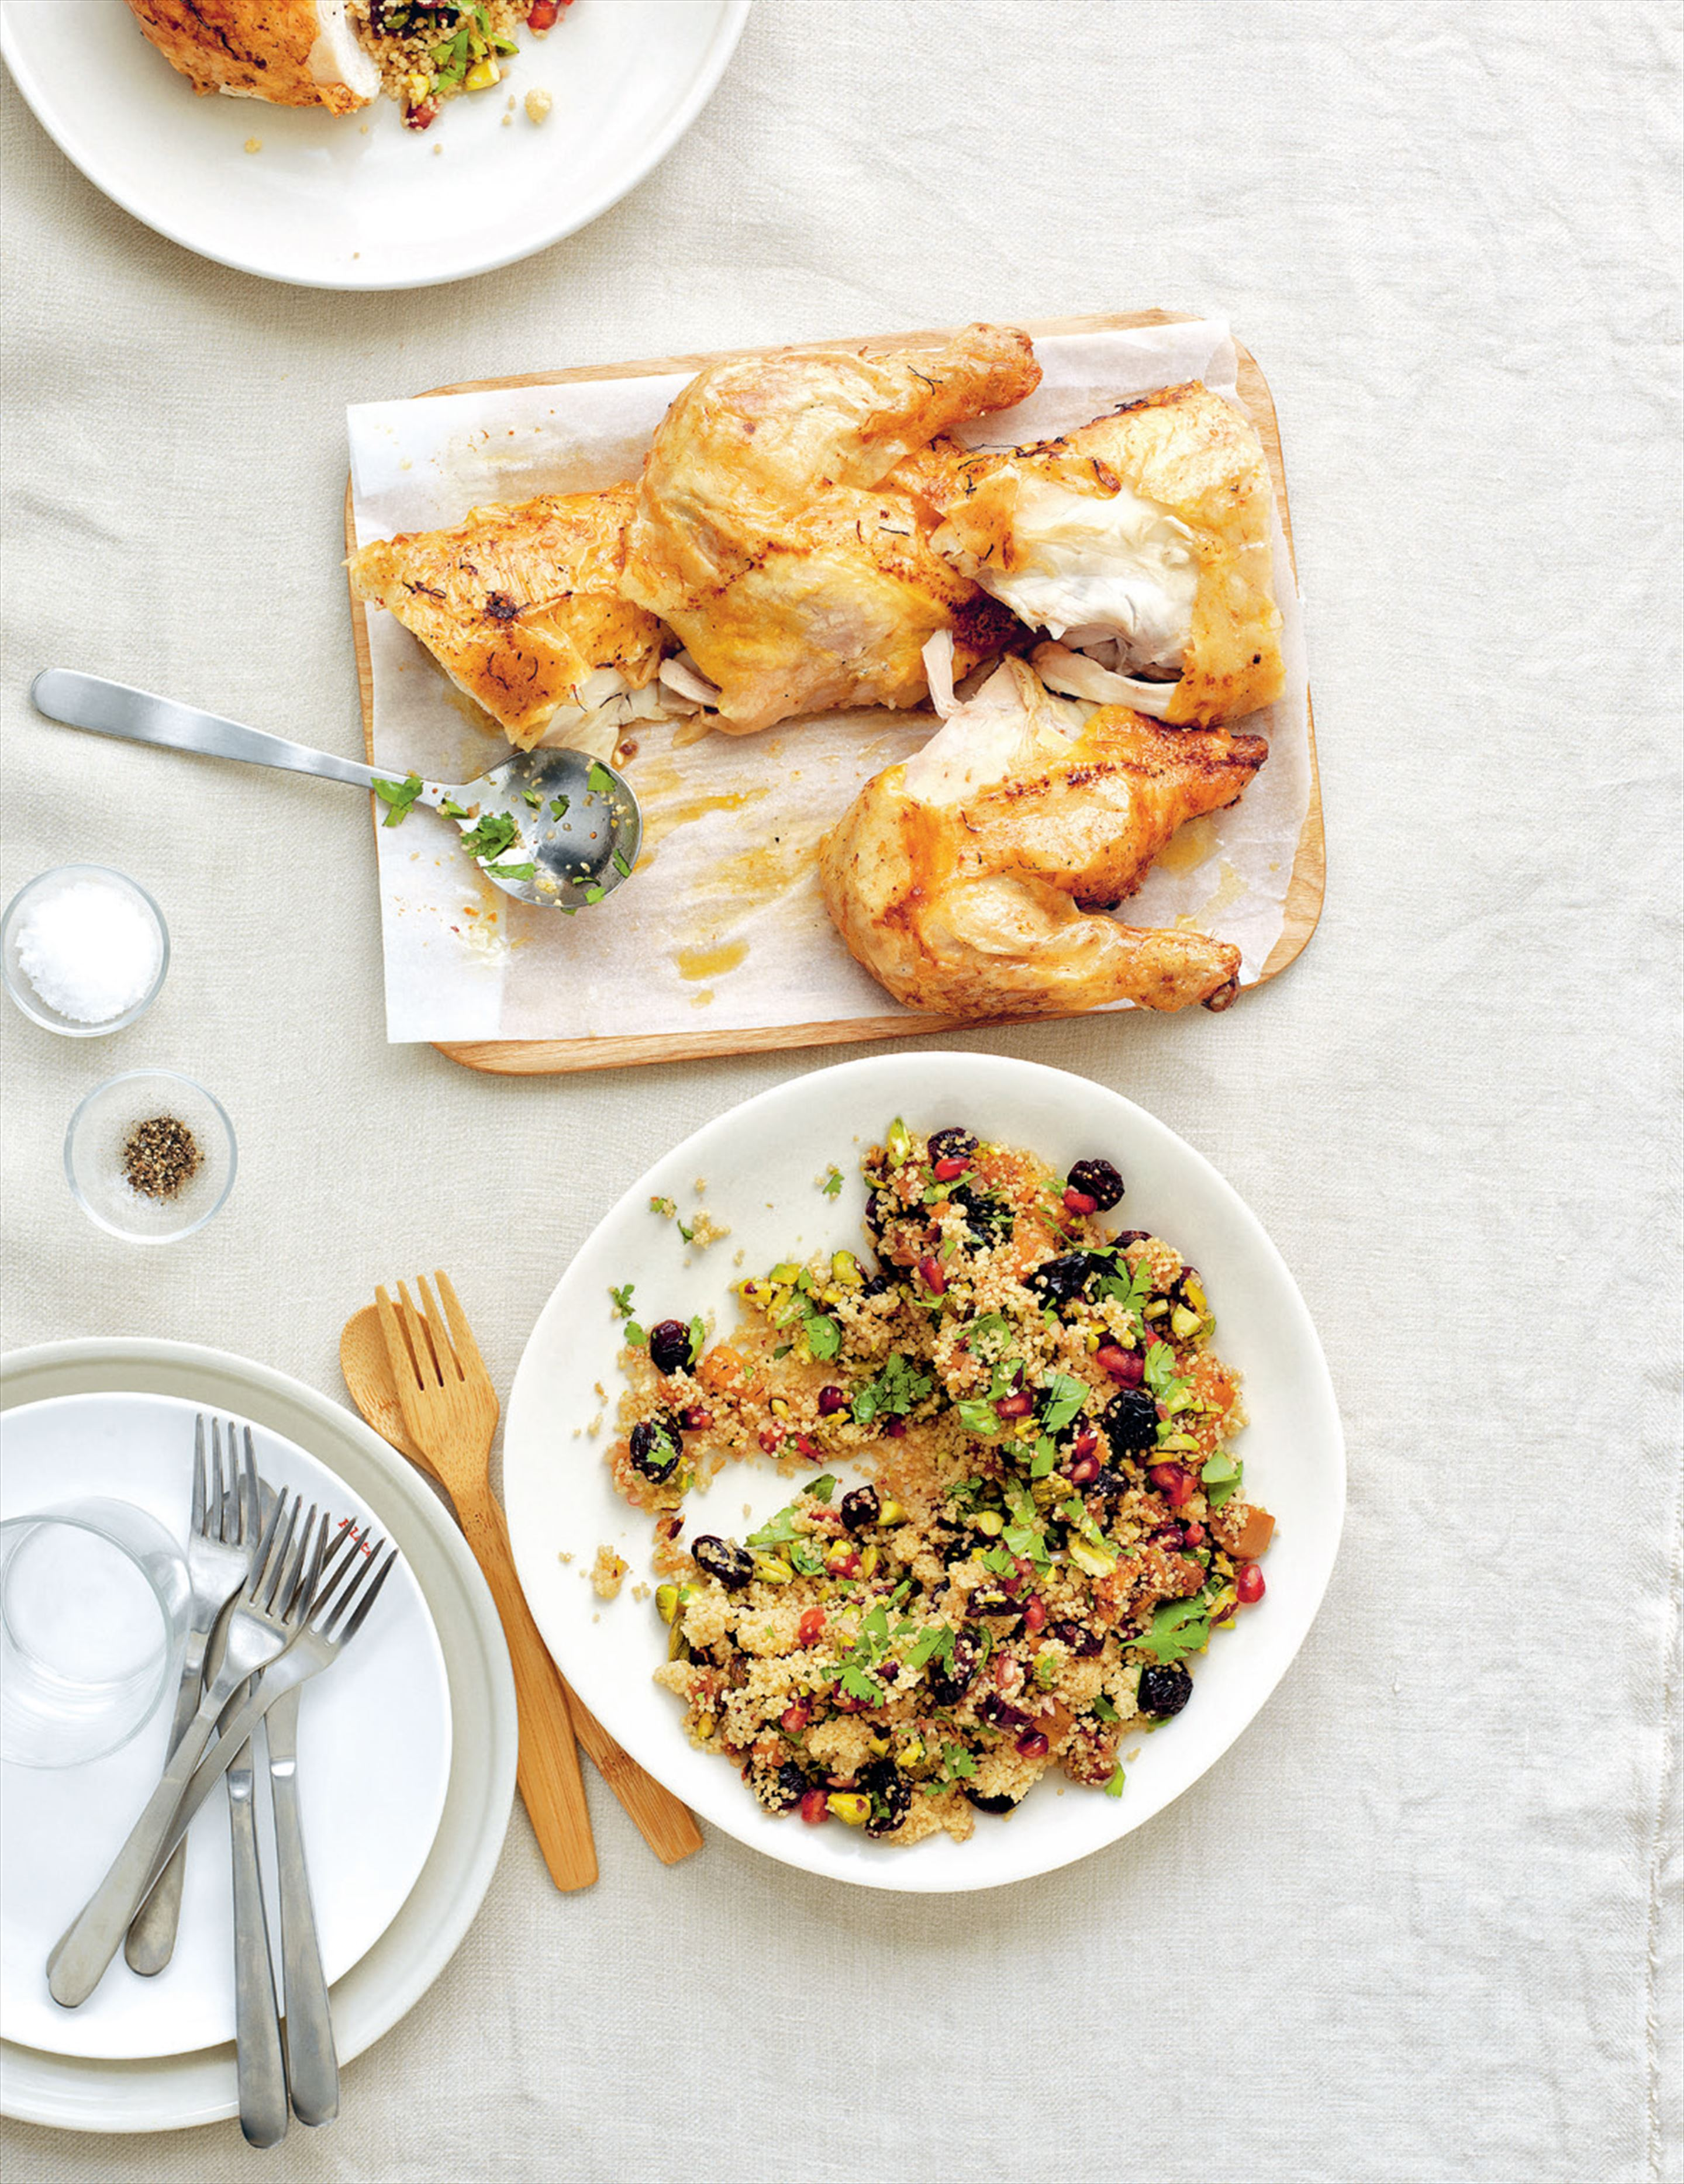 Saffron-glazed chicken with jewelled couscous